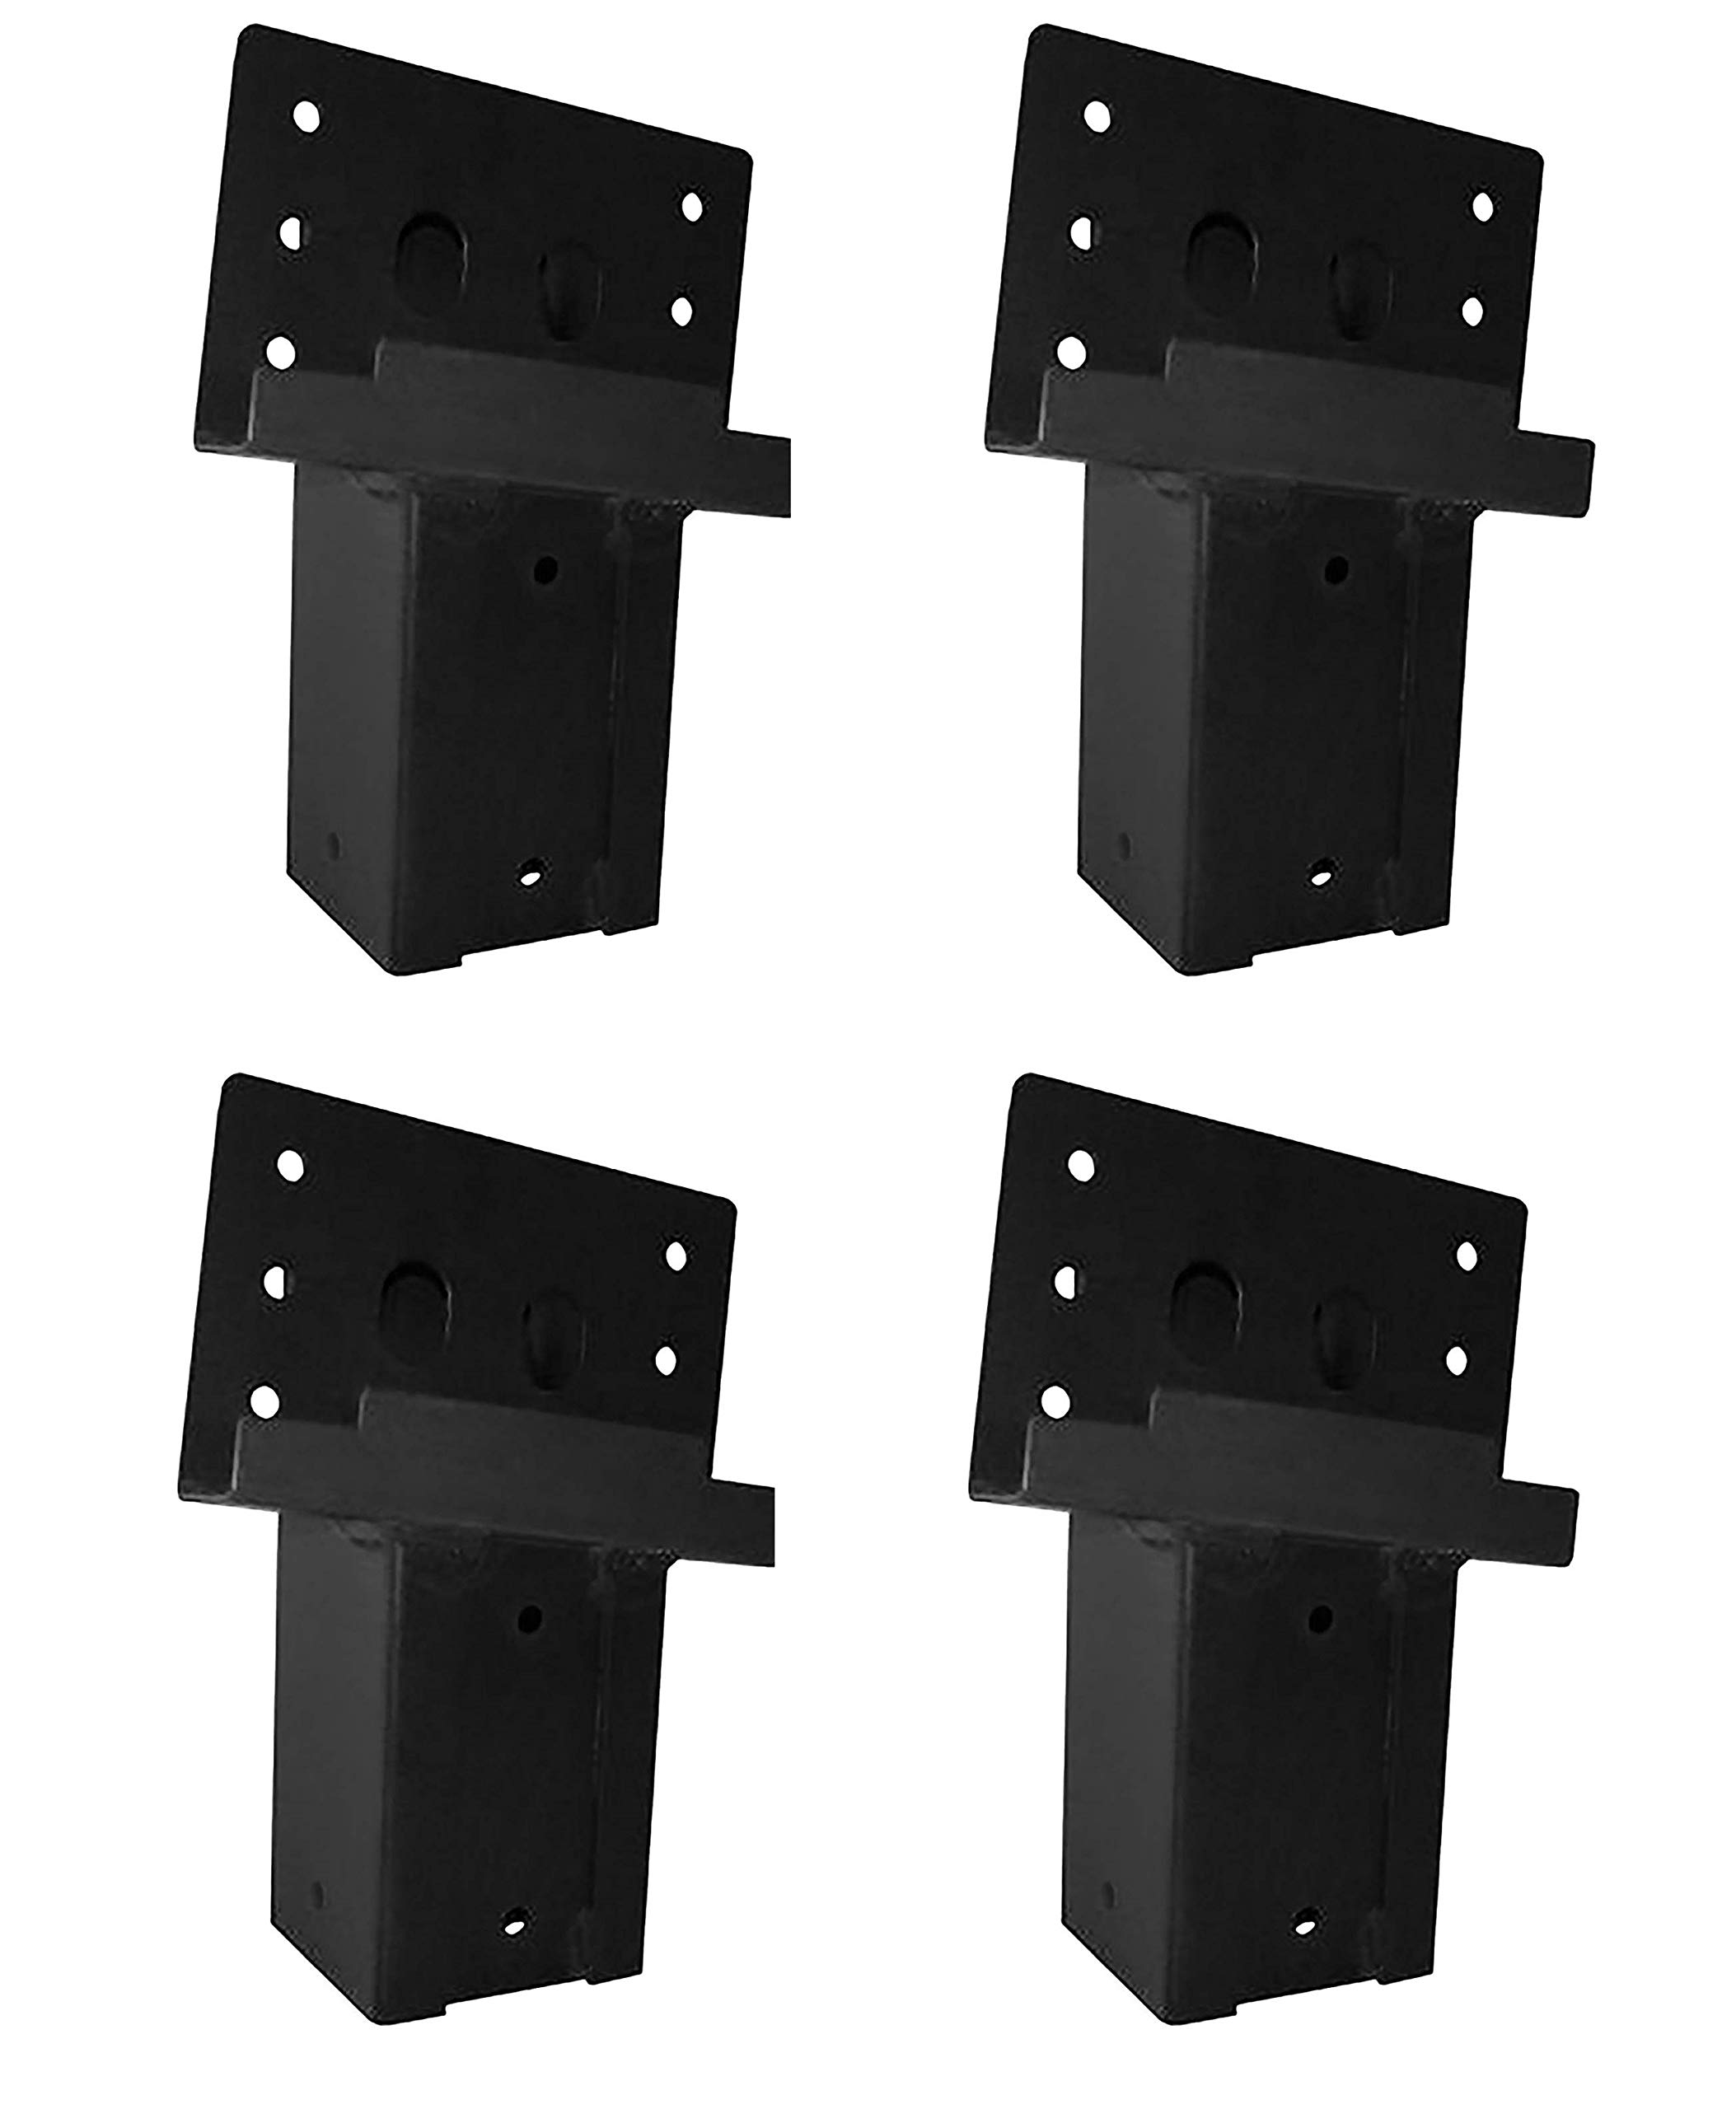 Elevators 4x4 Brackets for Deer Blinds, Playhouses, Swing Sets, Tree Houses. Made in The USA with Premium Construction Grade Steel. (Set of 4) (Pack of 4)